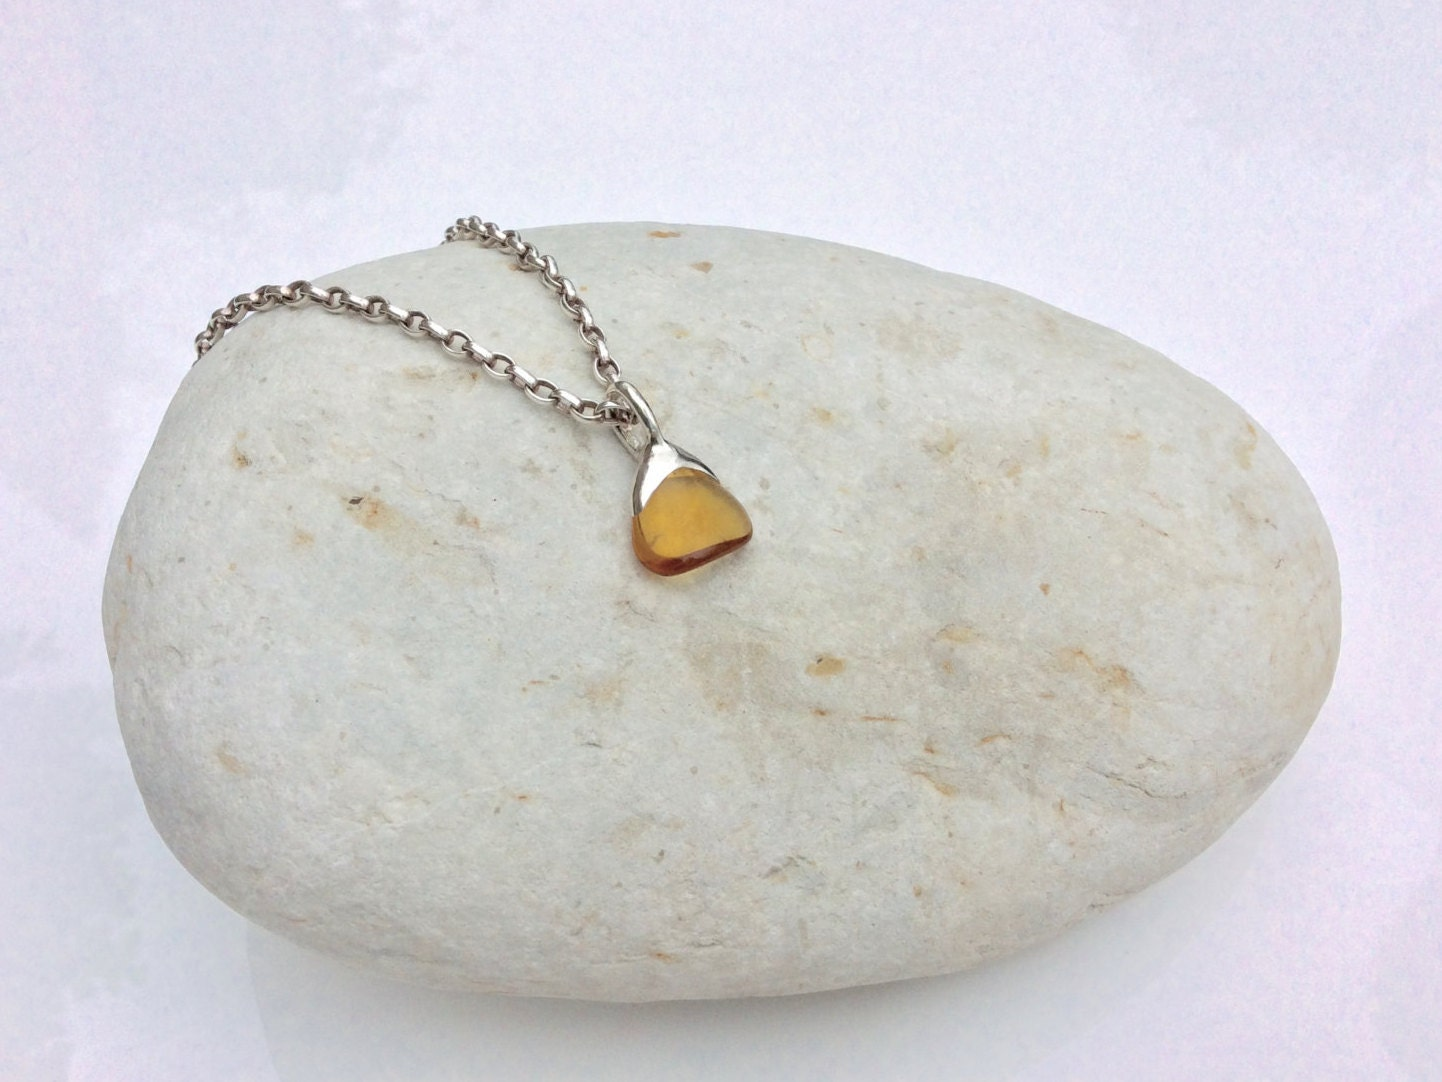 how to clean amber set in silver